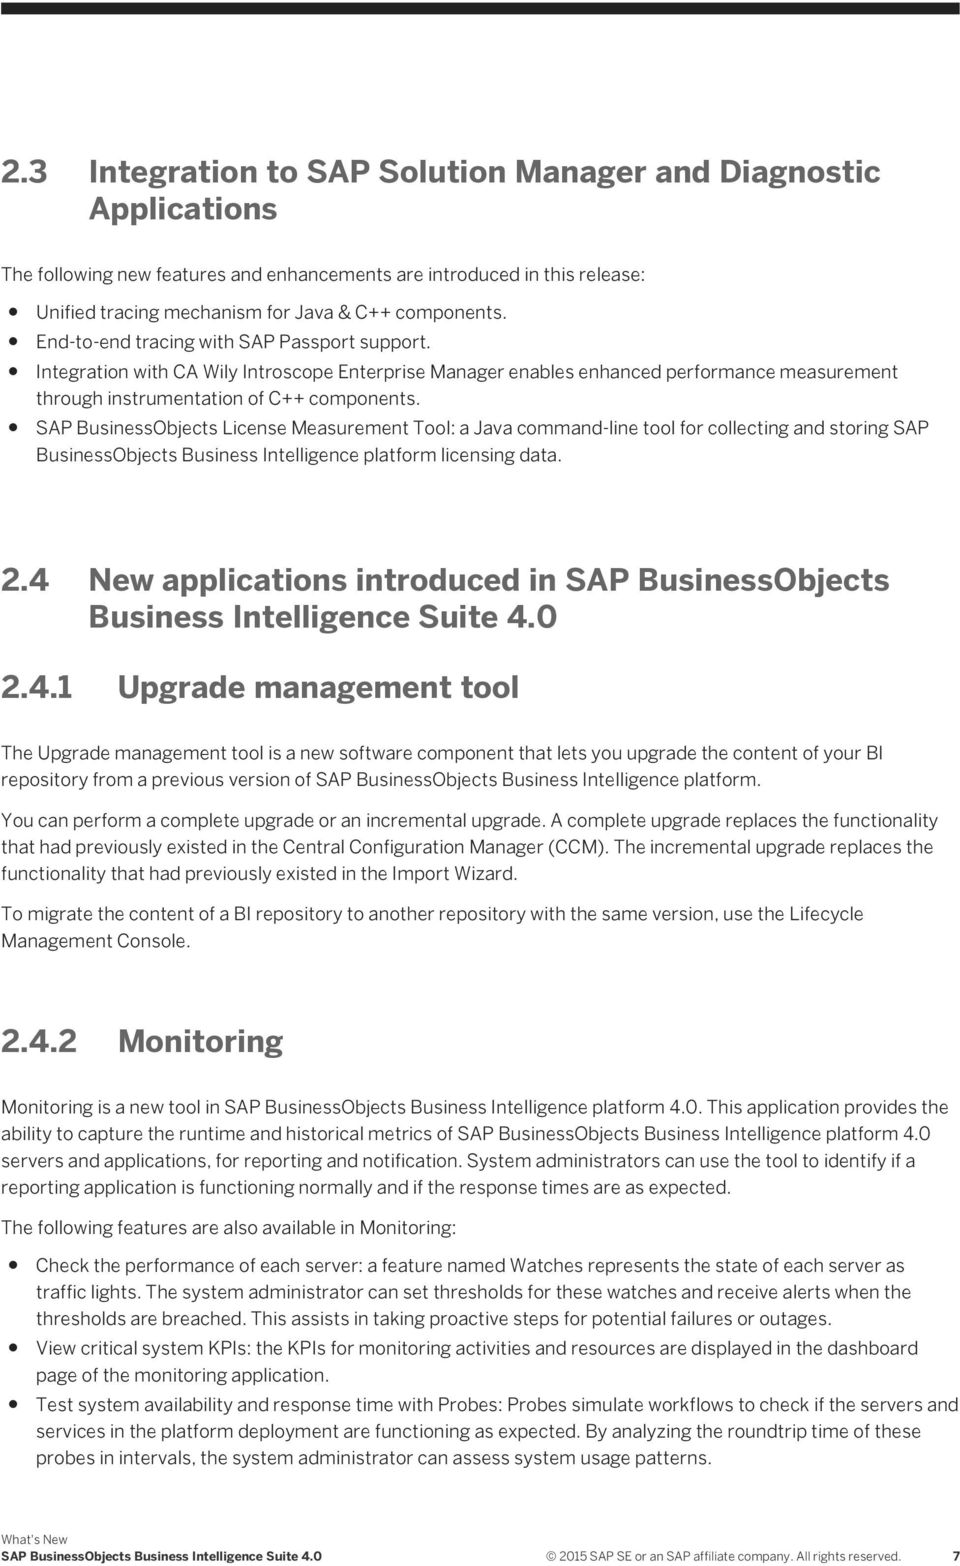 SAP BusinessObjects License Measurement Tool: a Java command-line tool for collecting and storing SAP BusinessObjects Business Intelligence platform licensing data. 2.